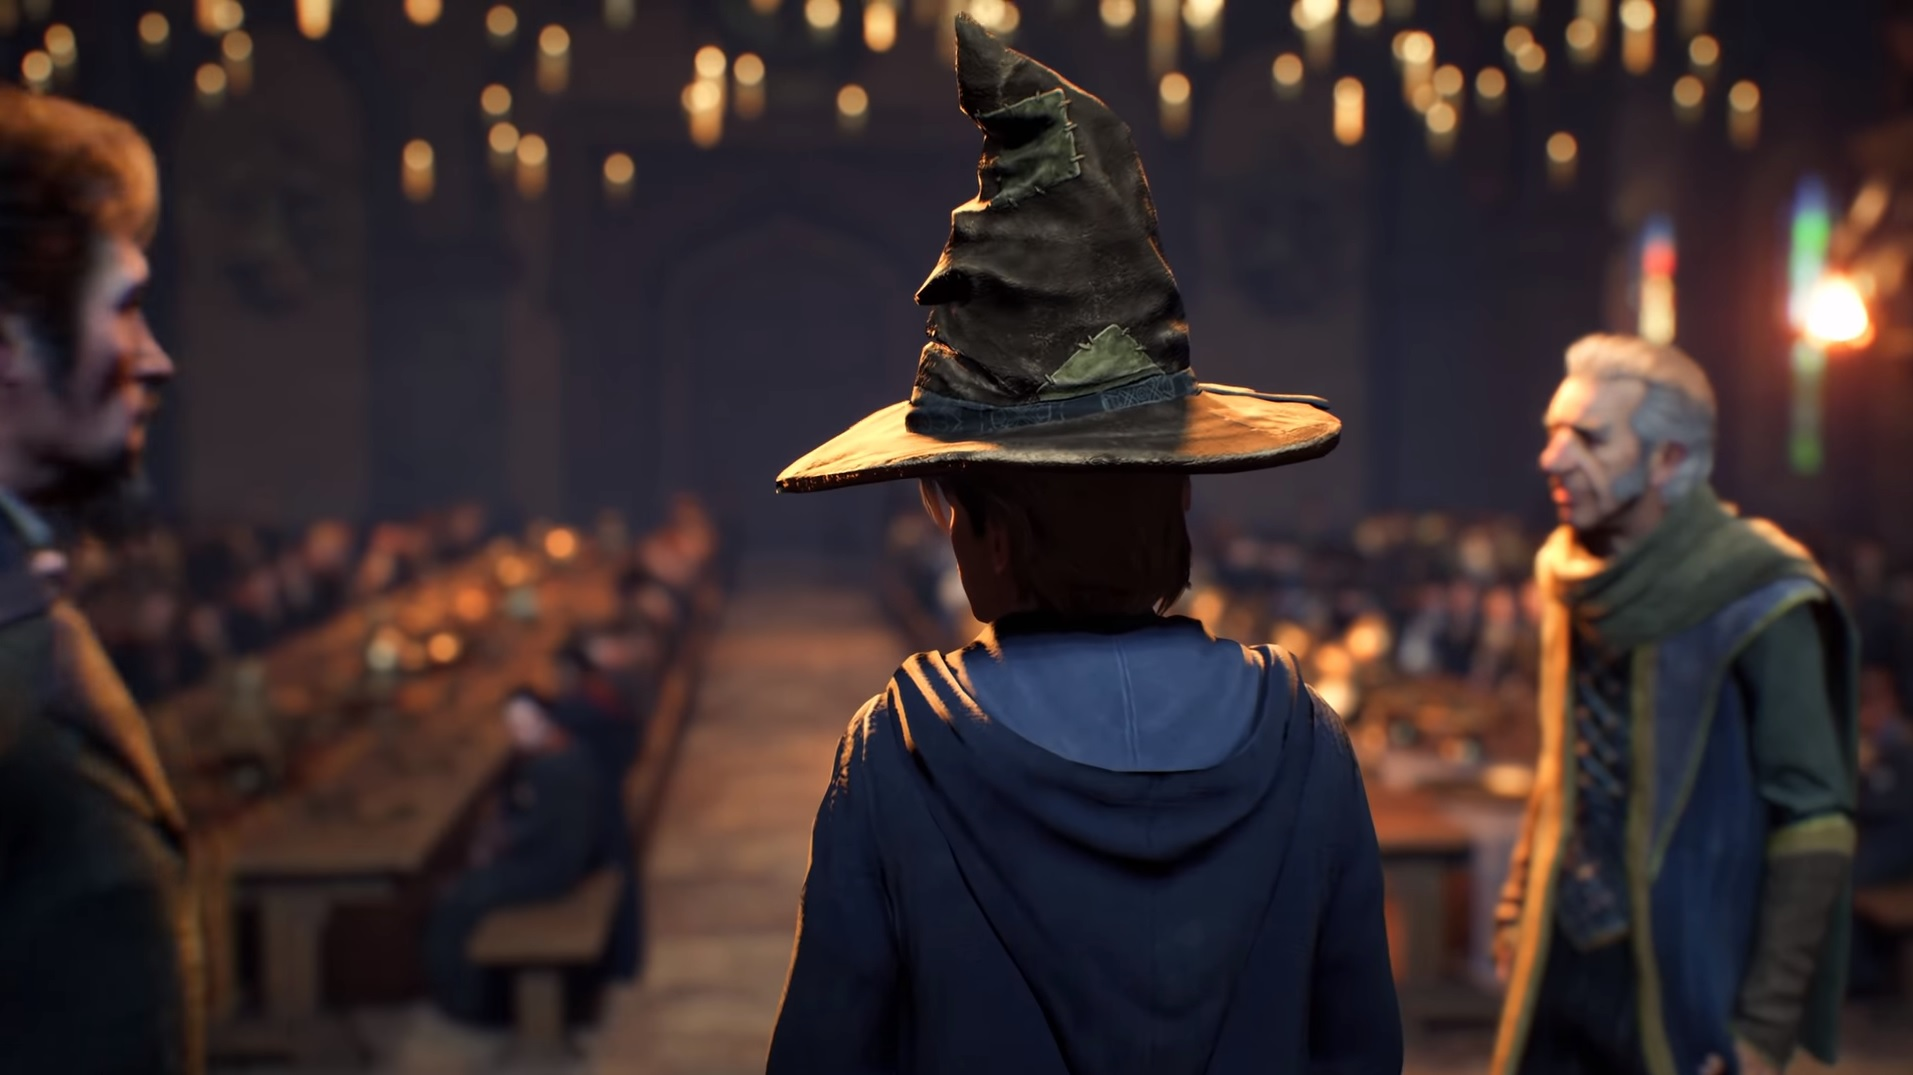 Hogwarts Legacy lead designer criticised for reactionary YouTube videos